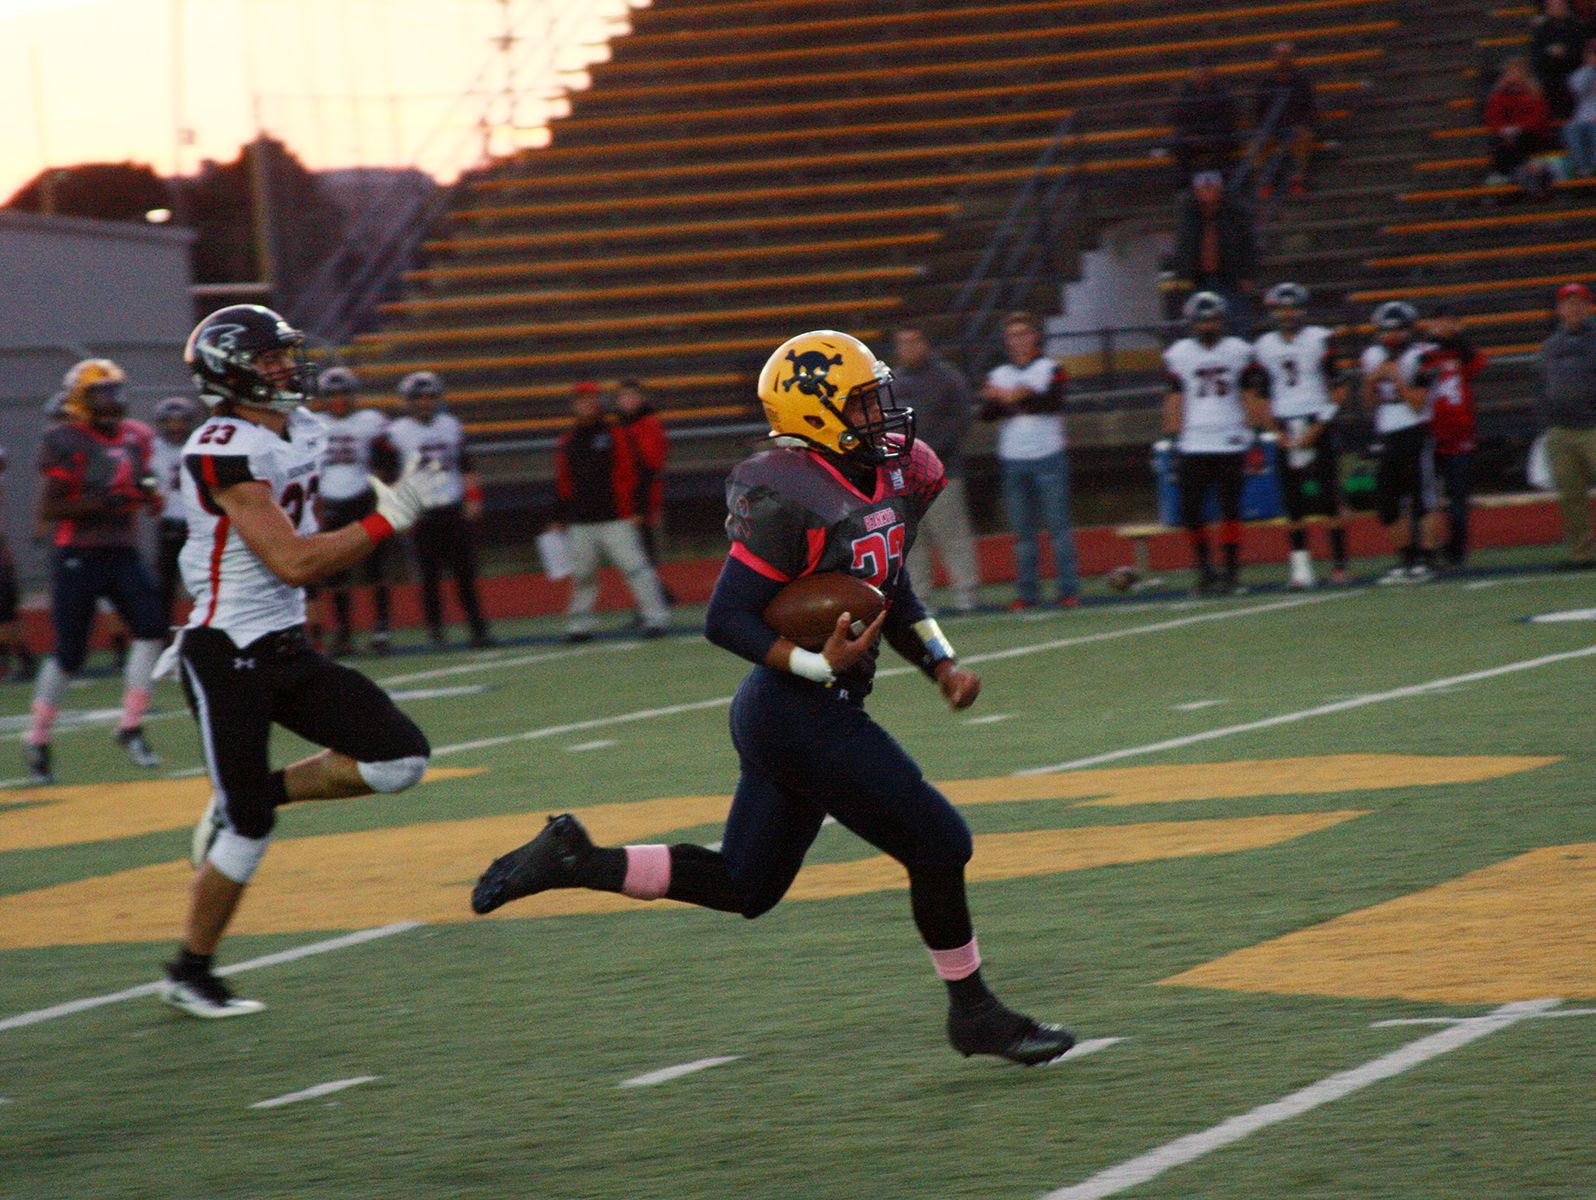 Battle Creek Central's Kevin Adams breaks loose for a 63-yard touchdown reception against St. Johns on Friday.